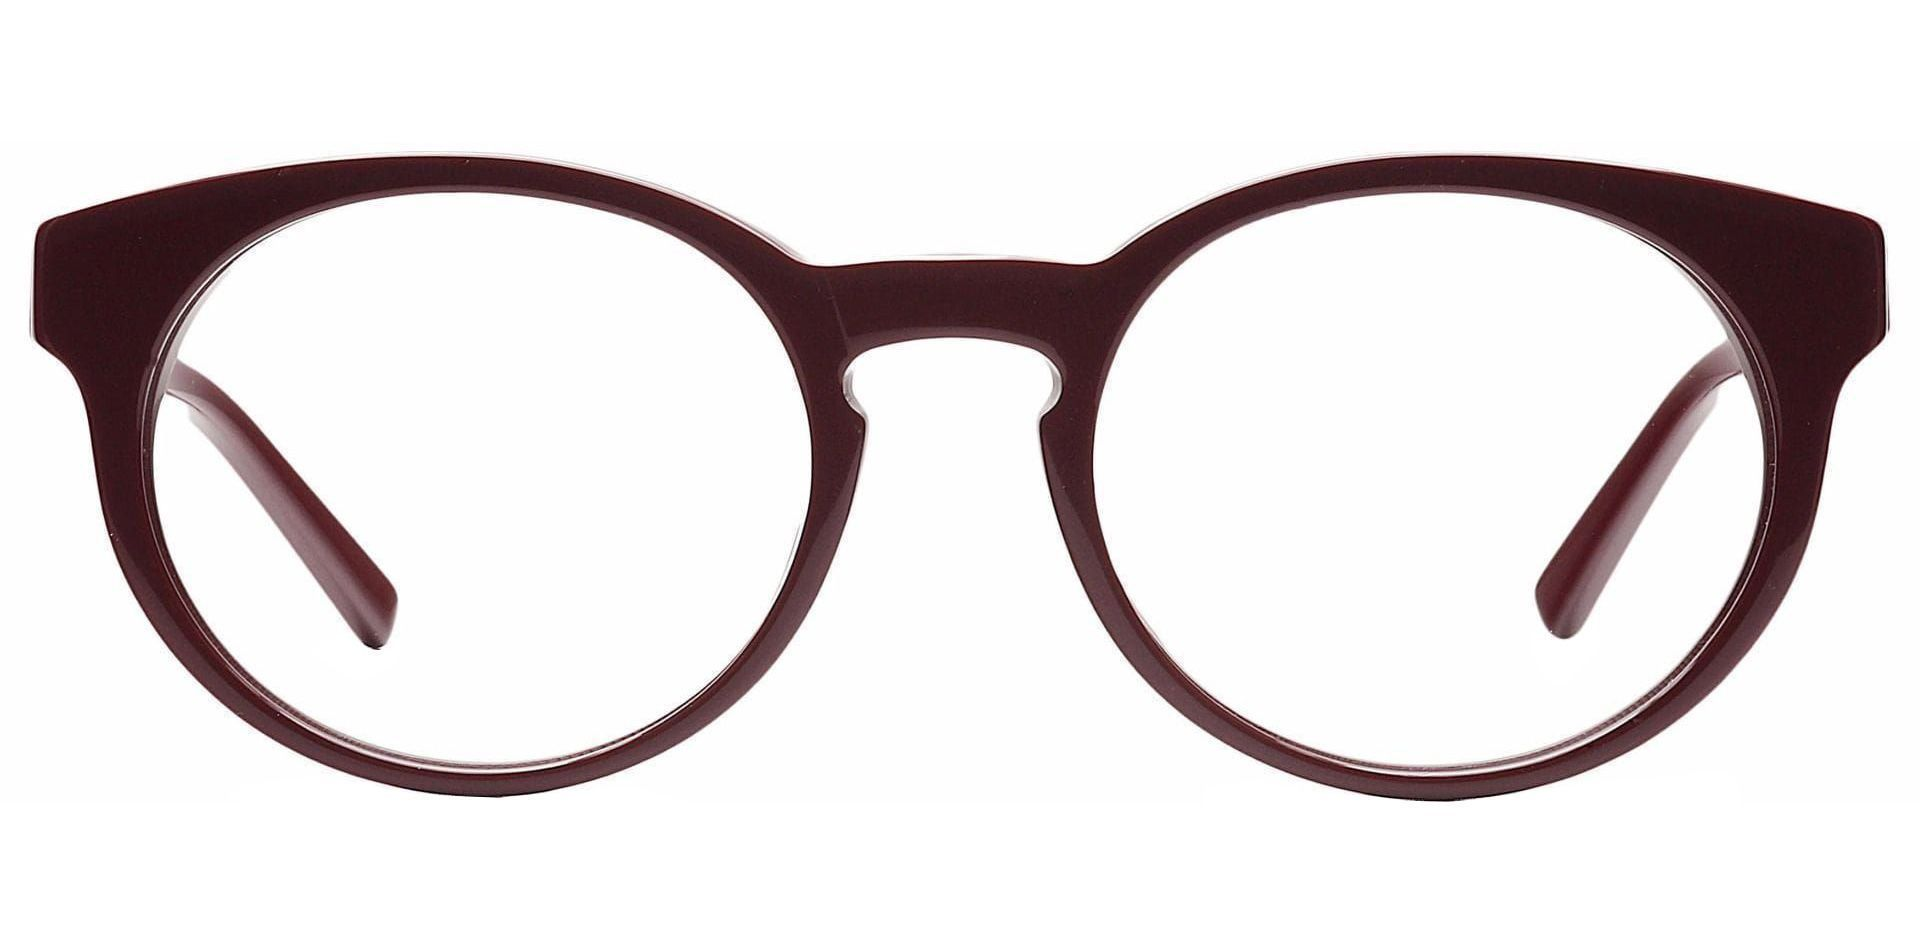 Hip Round Eyeglasses Frame - Wine